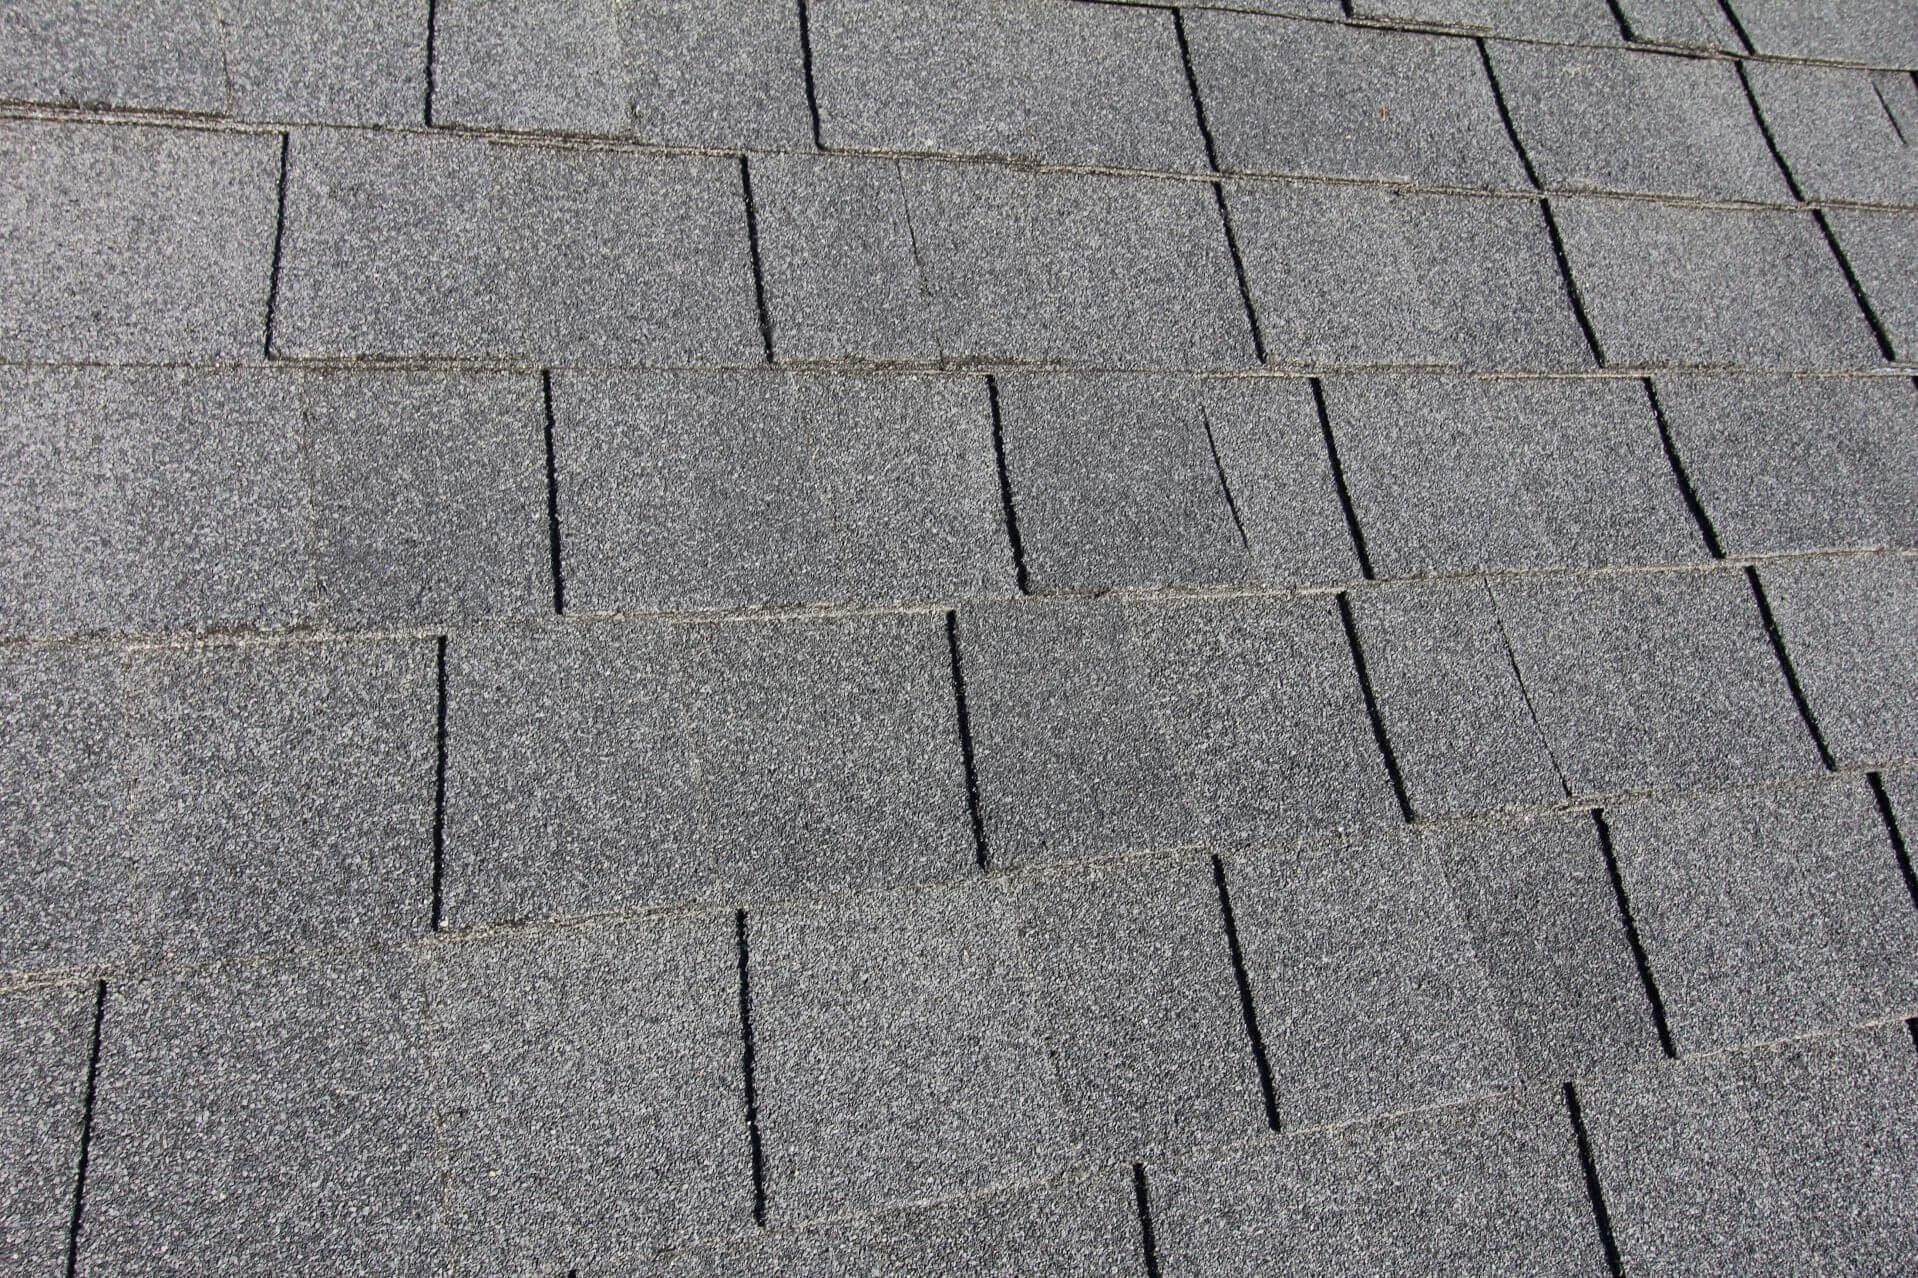 Edmonds Commercial Roofers. Roof Repairs Leaks. 45 Years Roofing Experience. Roofing Company. Local Licensed Contractor Near Me - Emergency & New Roof Replacements. Roofing Experts For Lynnwood & Shoreline, WA